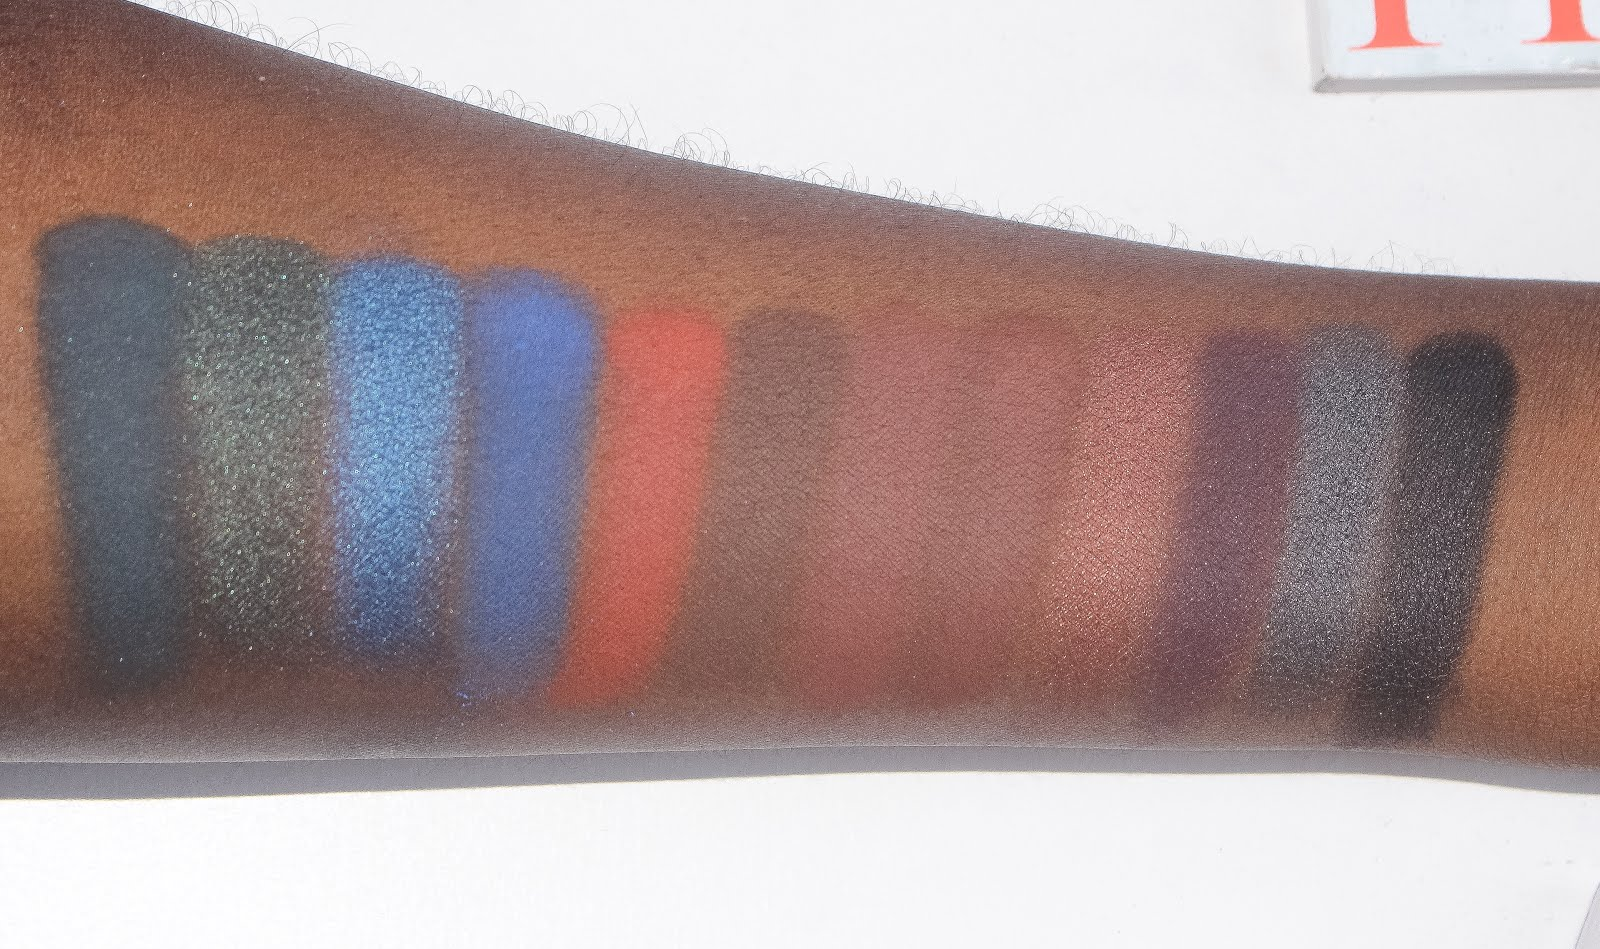 Makeup Geek Peacock, Envy, Neptune, Morocco, Corrupt, Cocoa Bear, Mocha. Mac Swiss Chocolate. Morphe Burlesque, Sapphire, Blackberry